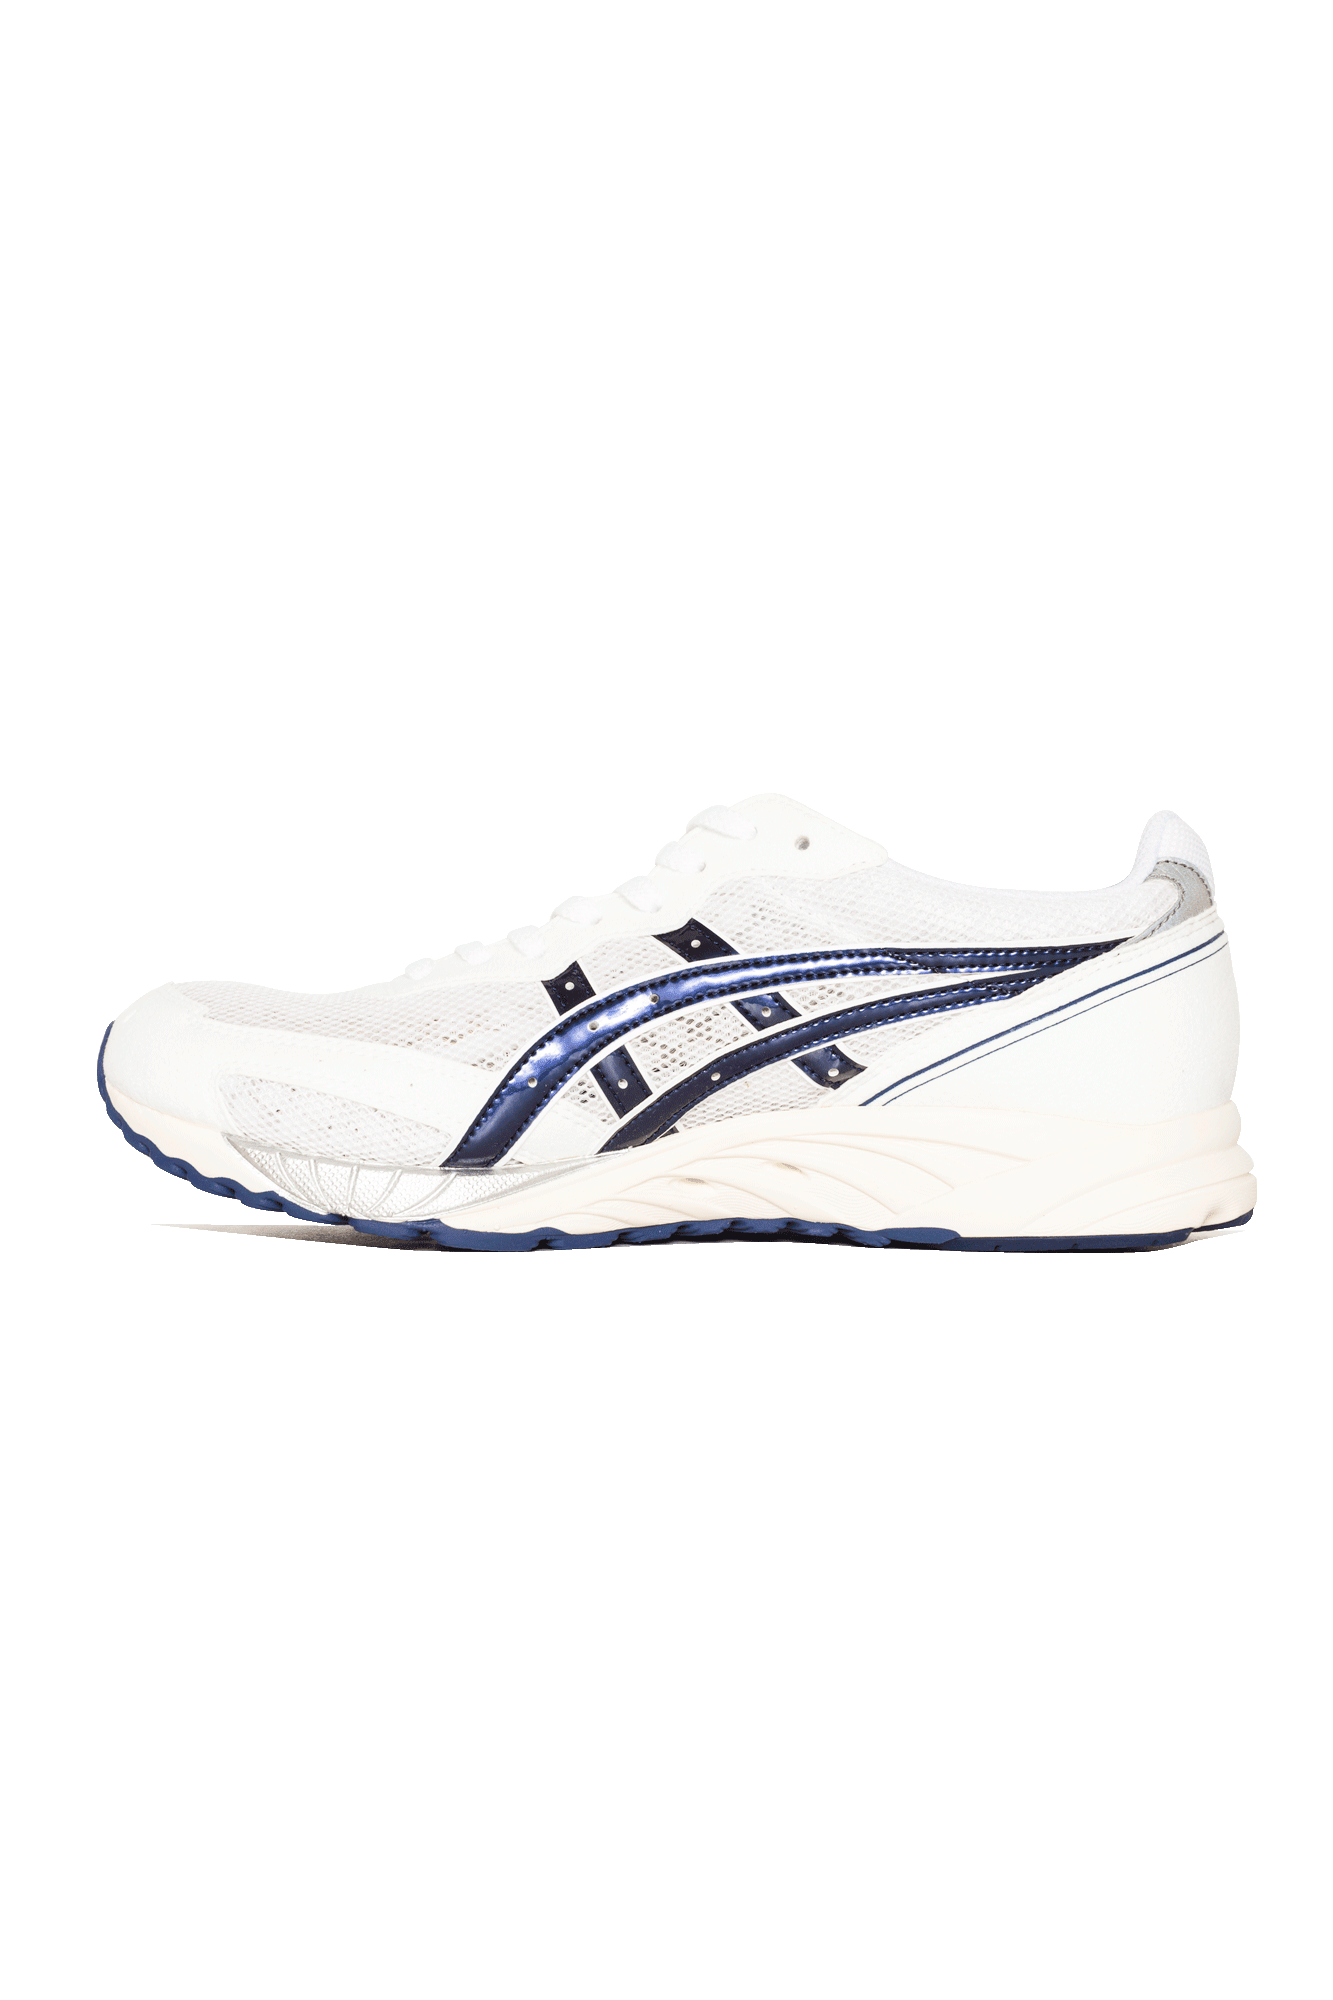 Asics Sneakers Skysensor Japan Bianco 1013A050#000#100#8 - One Block Down